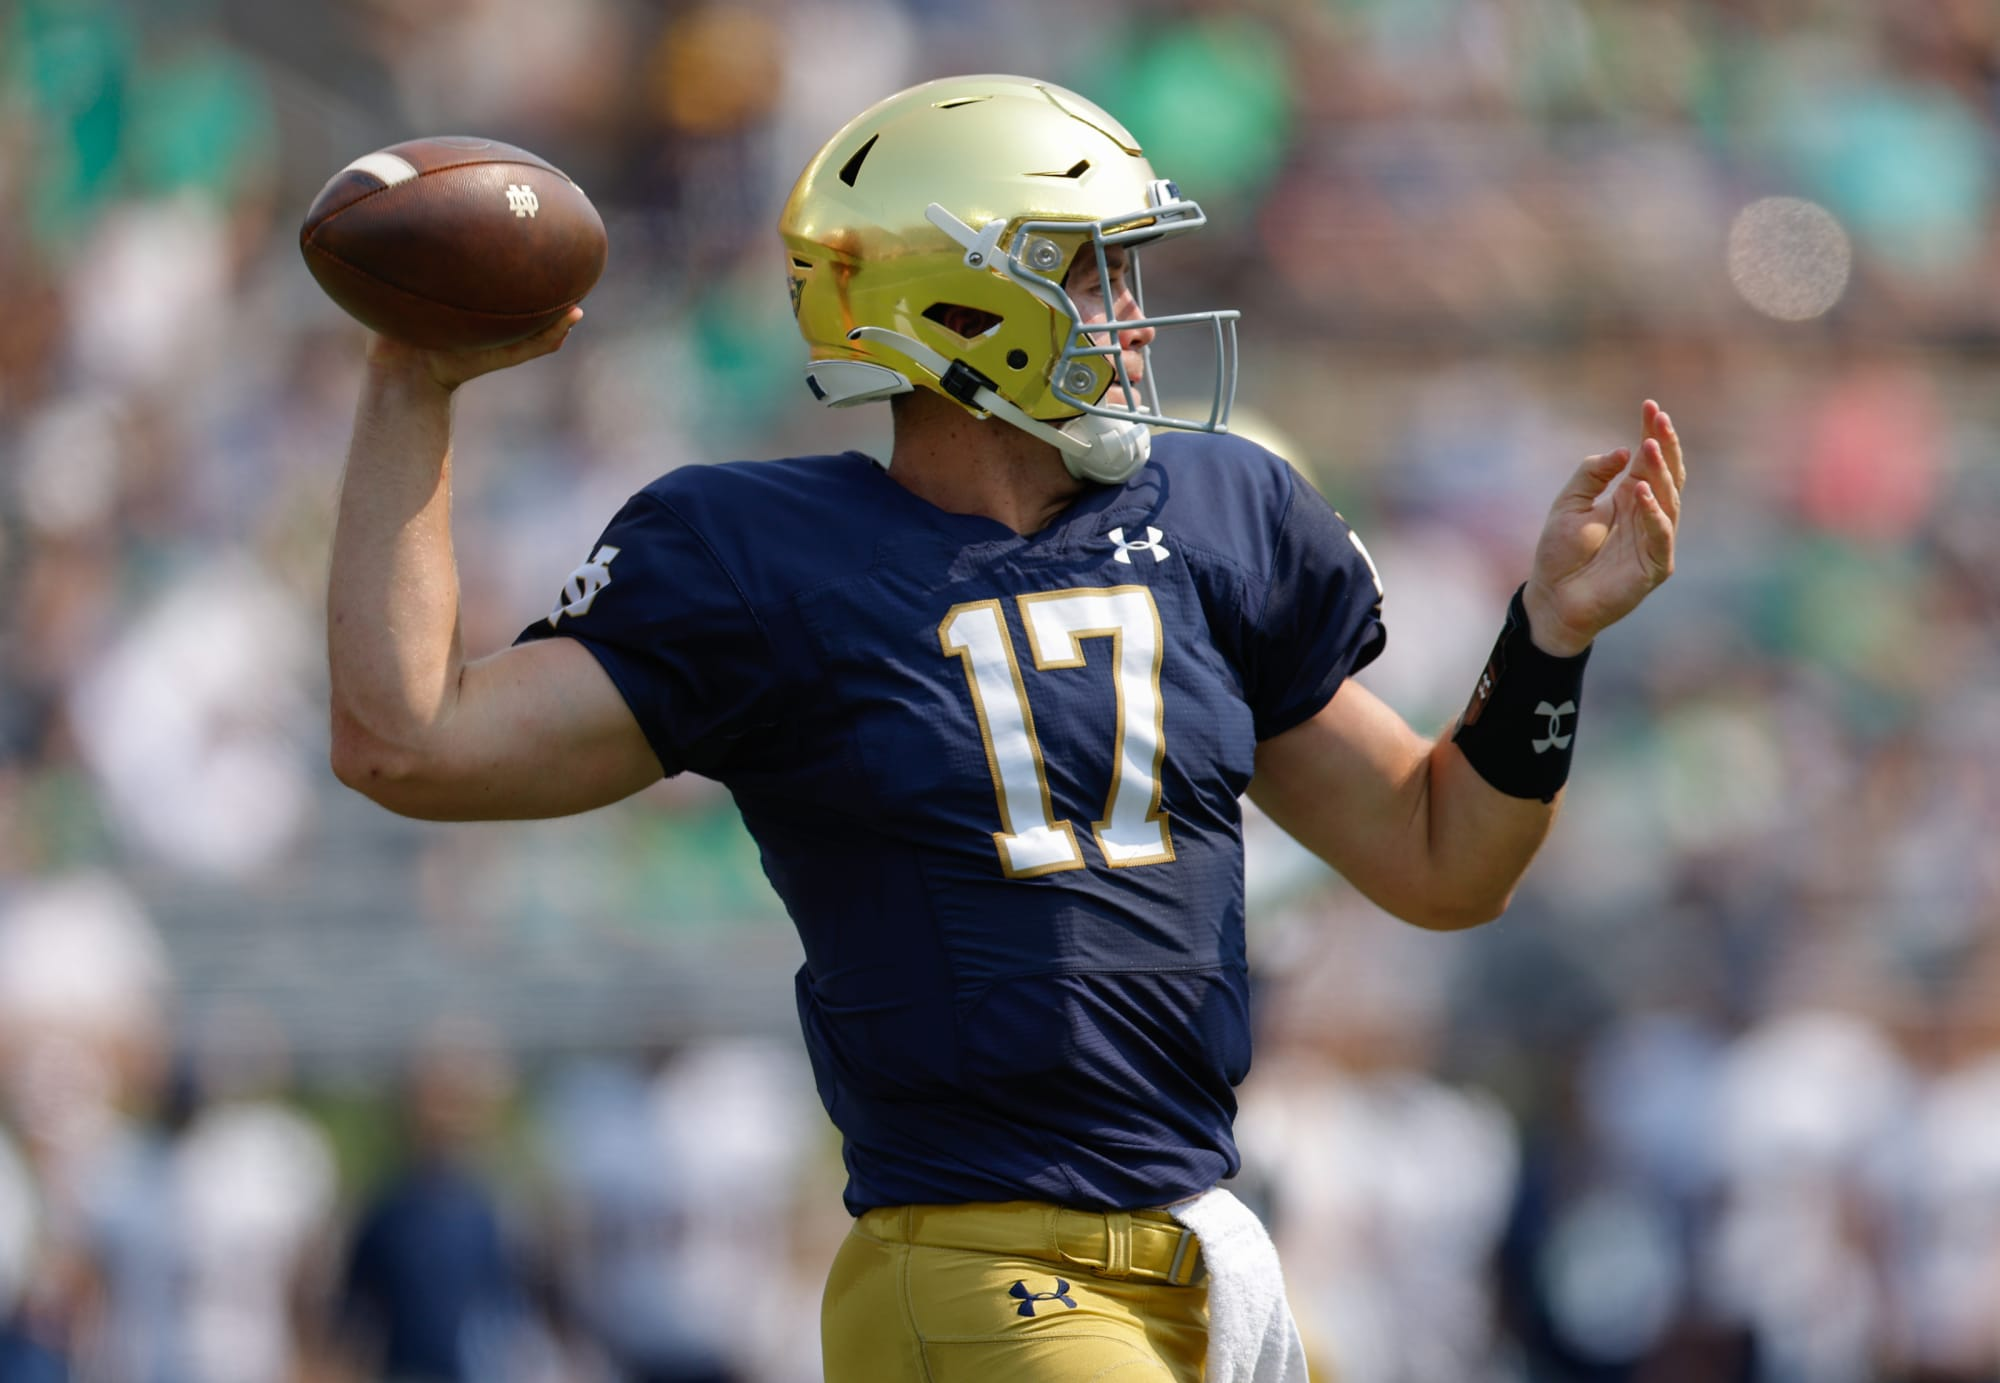 Notre Dame Football: 3 bold predictions for Irish against Wisconsin